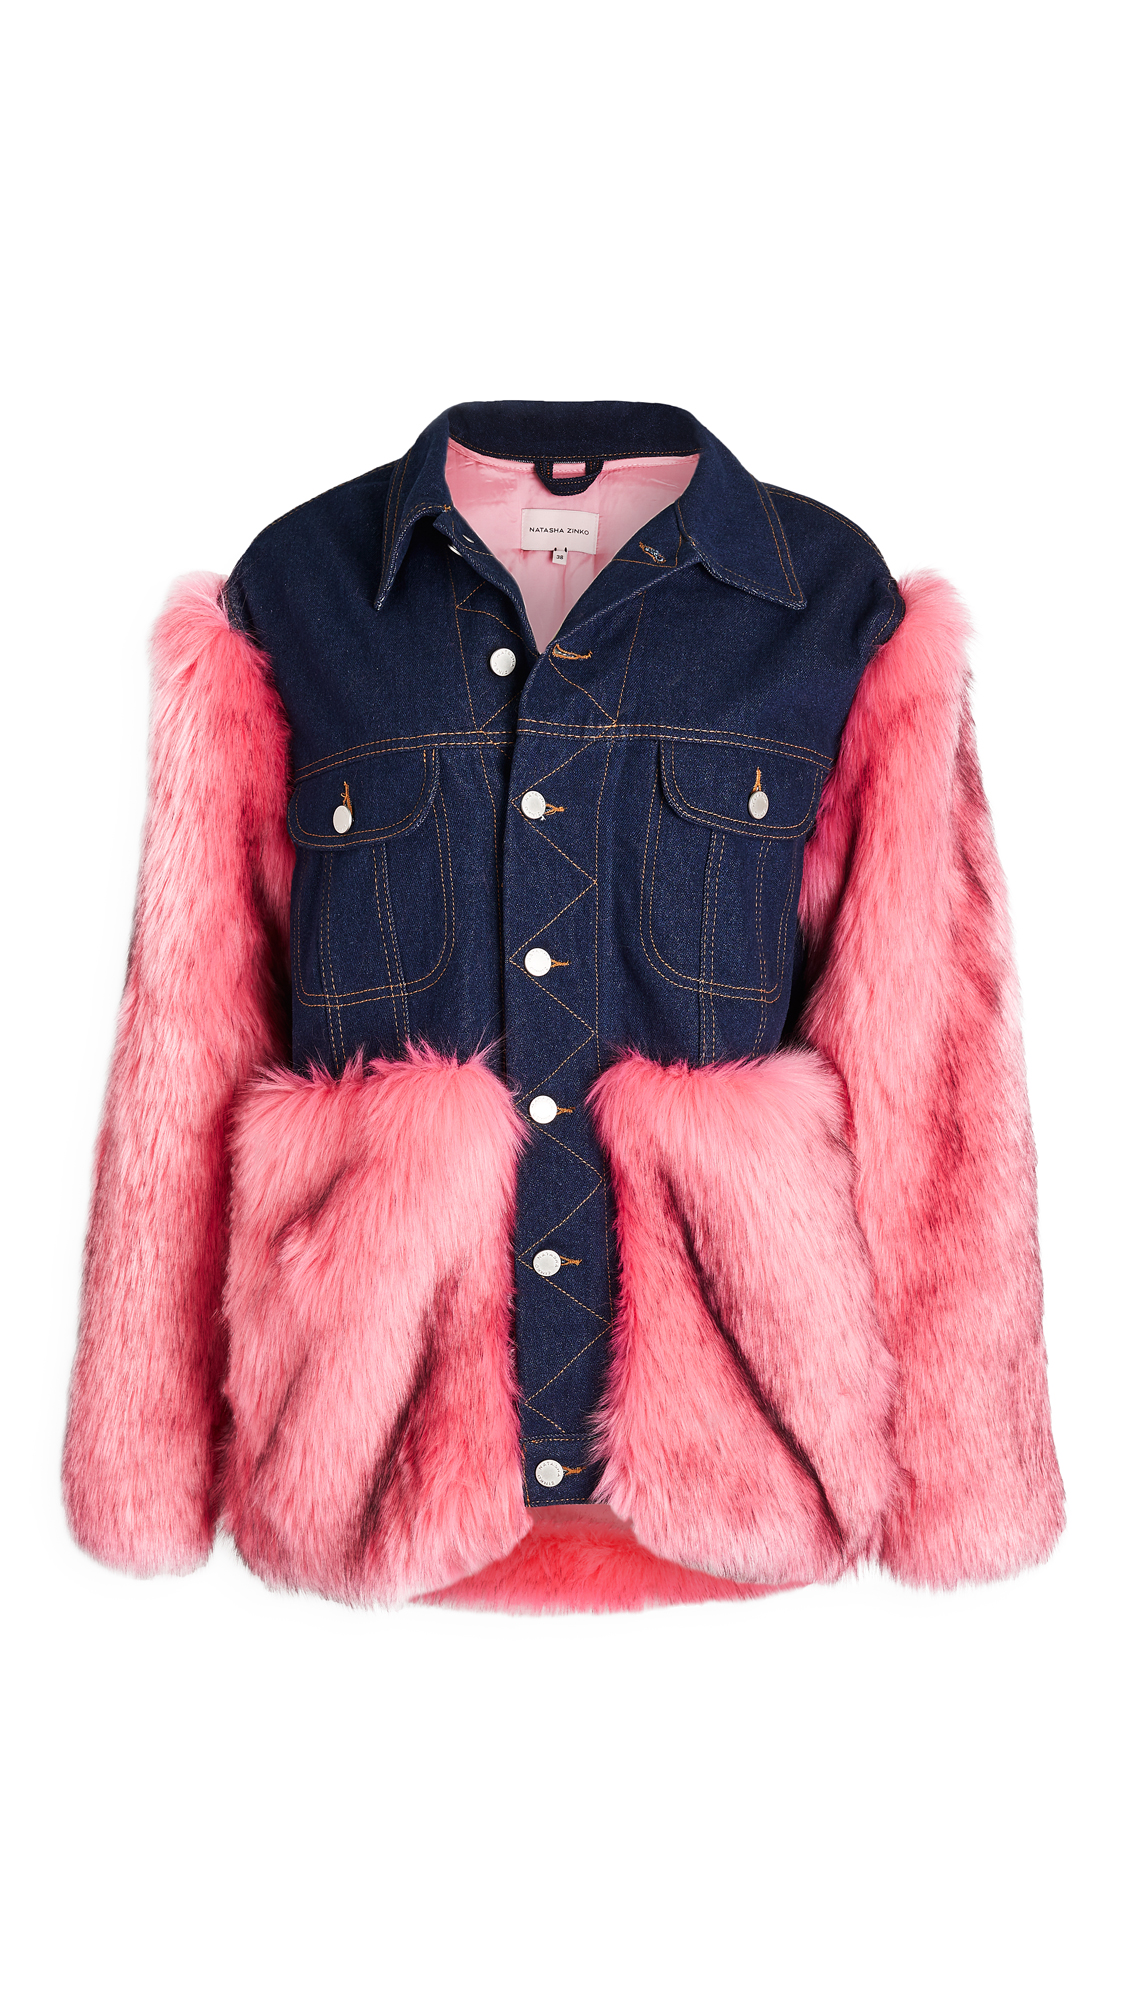 Natasha Zinko FAUX FUR & DENIM JACKET